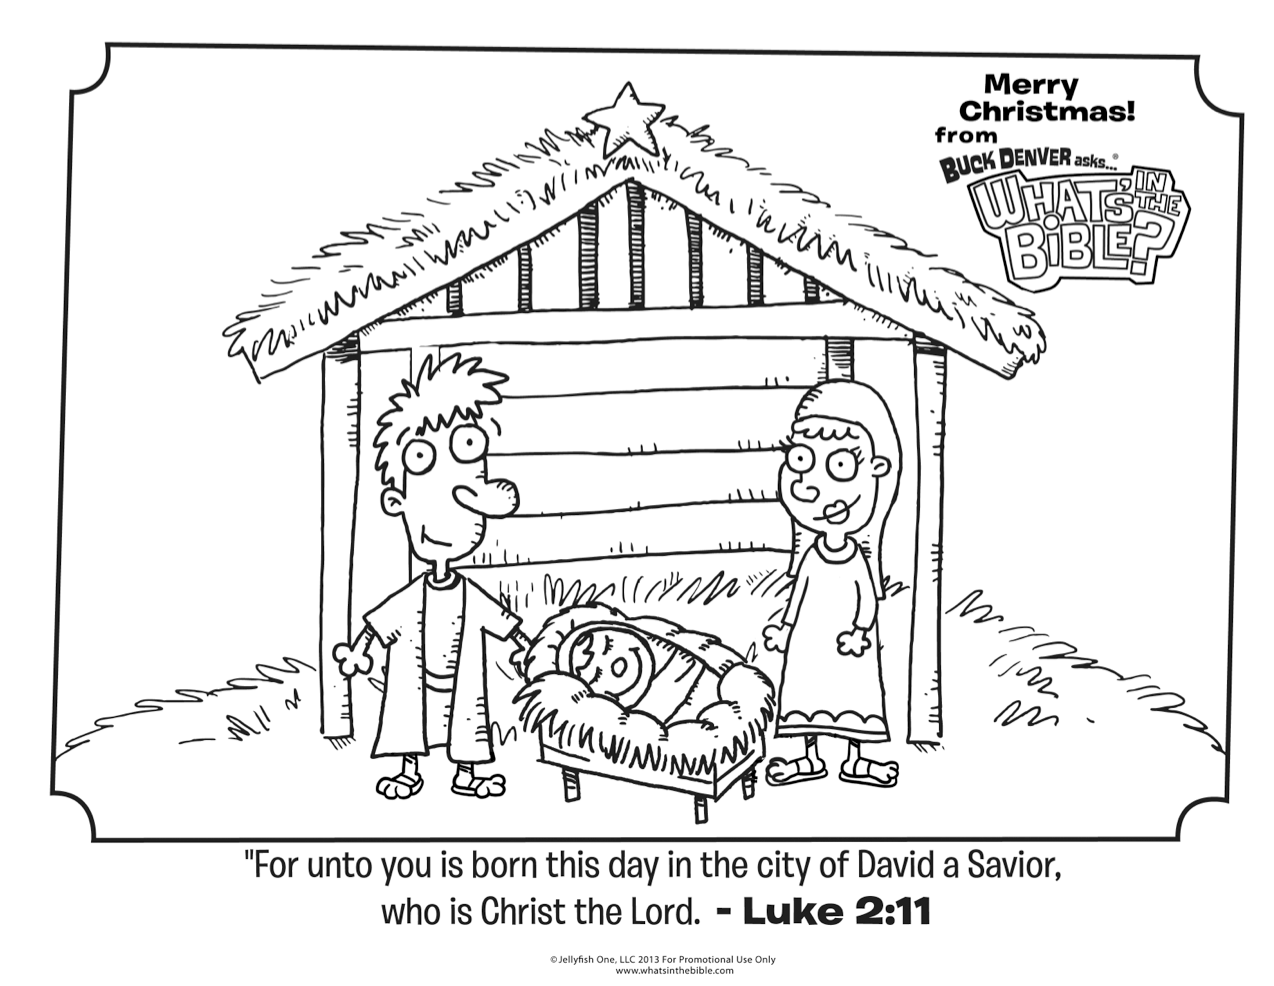 Luke 2 11 Christmas Coloring Page Whats in the Bible